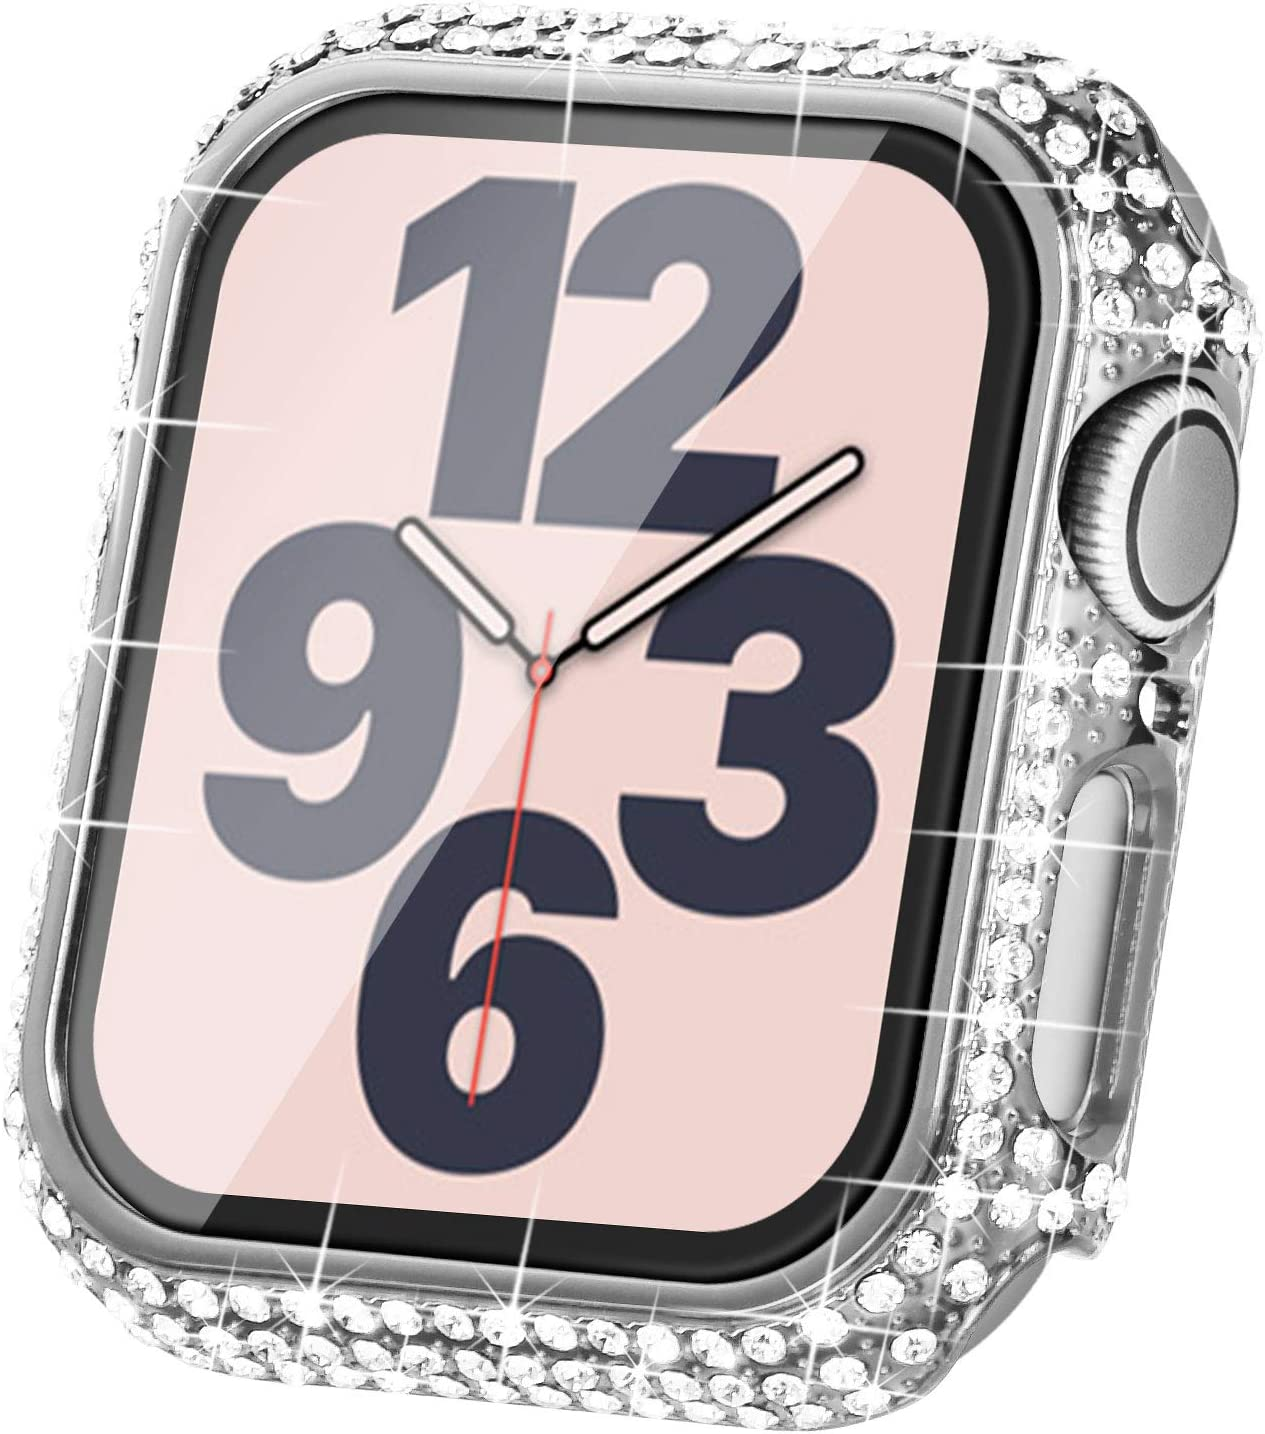 Surace Compatible with Apple Watch Case 44mm for Apple Watch Series 6/5/4/3/2/1, Bling Cases with Over 200 Crystal Diamond Protective Cover Bumper for 38mm 40mm 42mm 44mm (44mm, Silver)